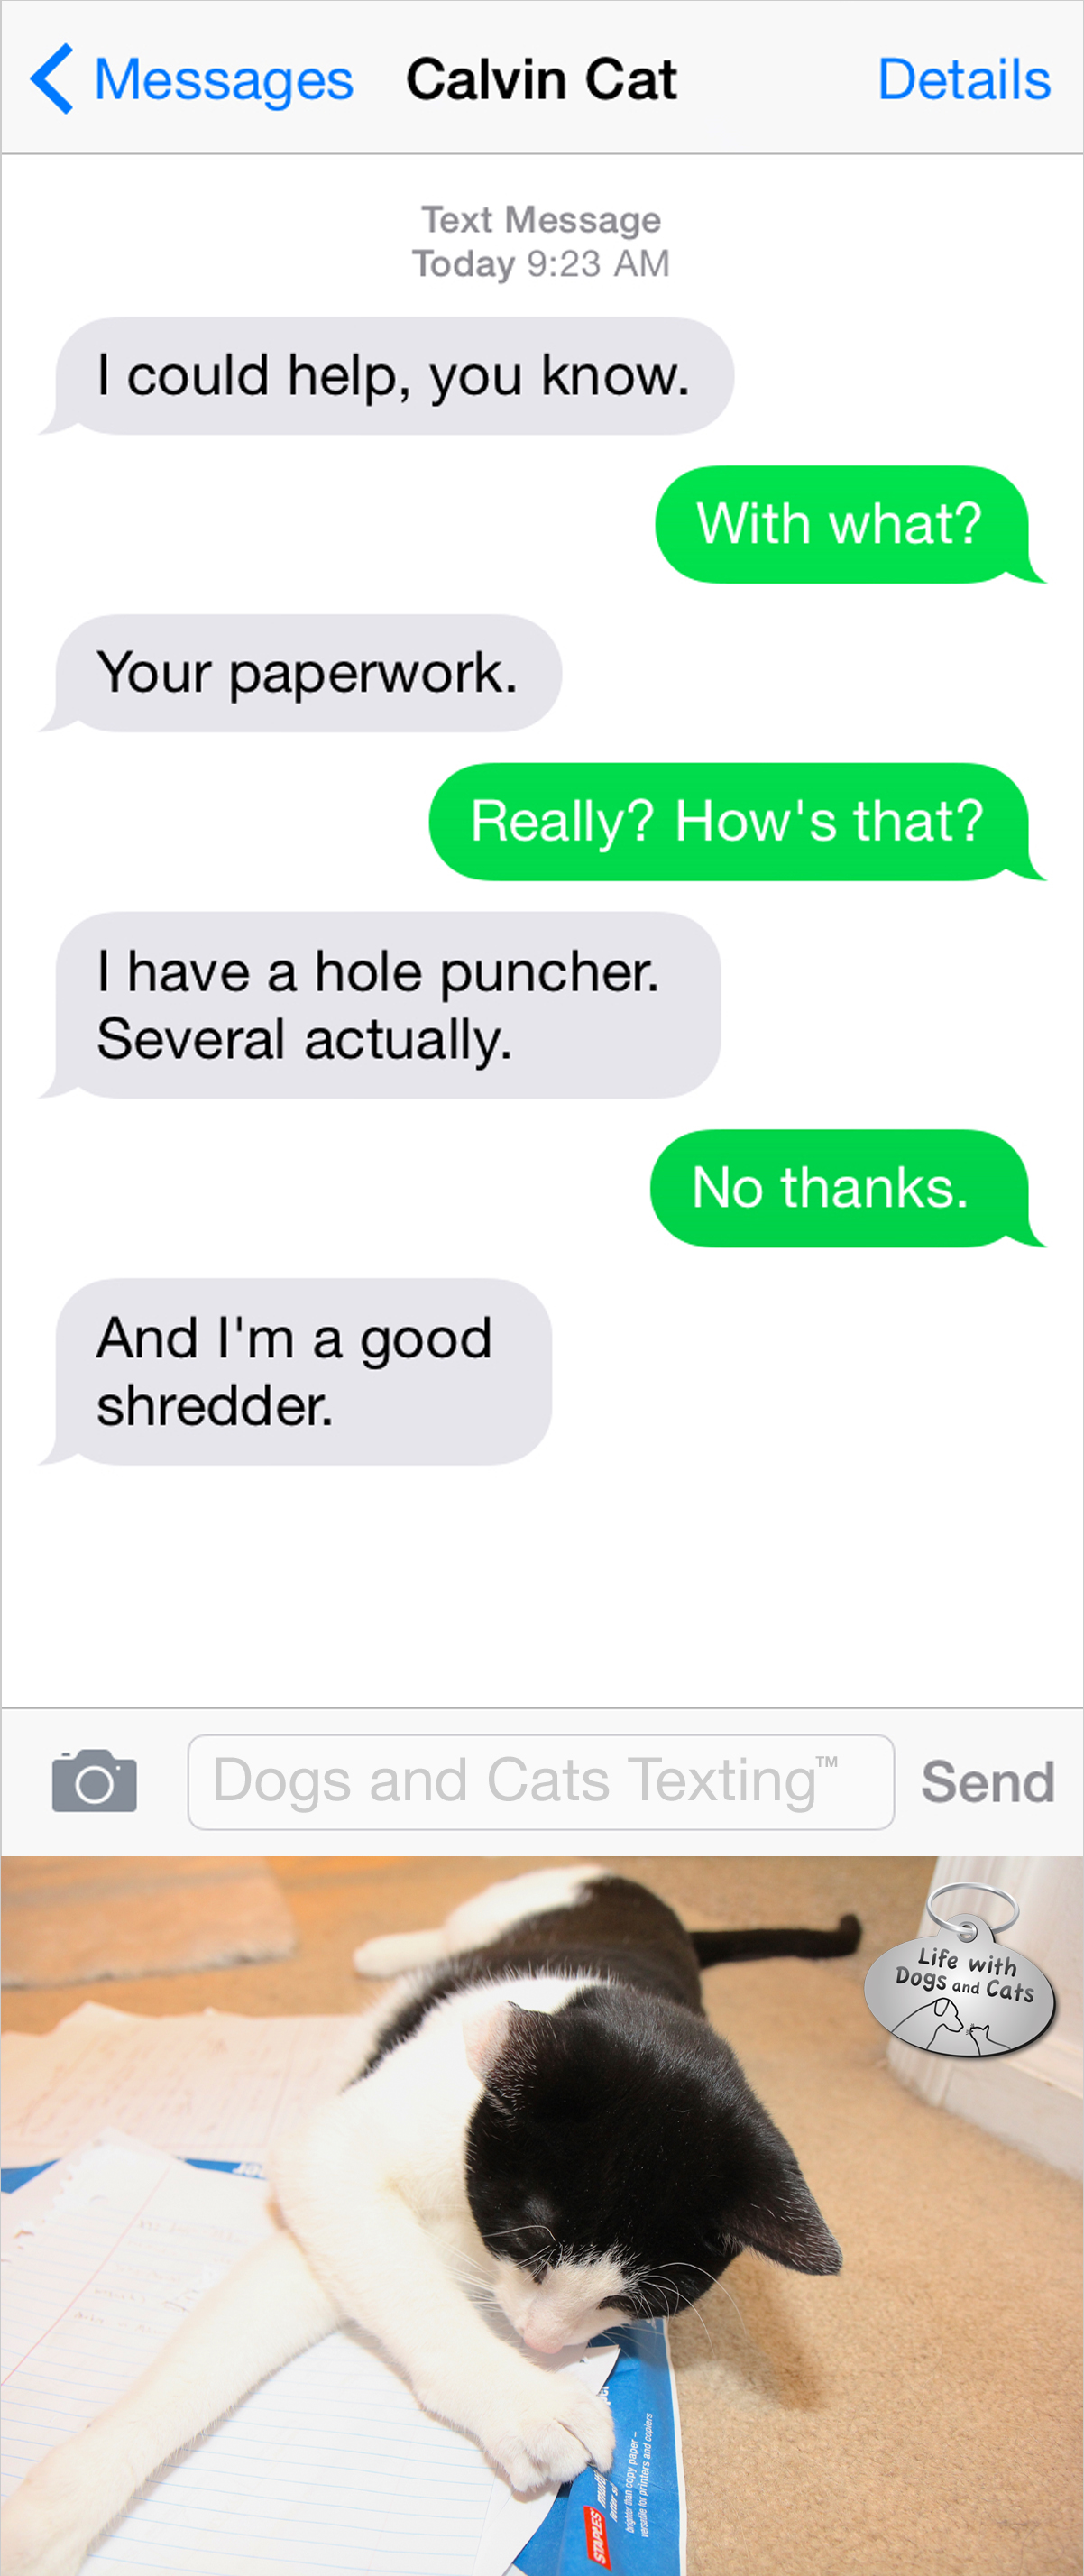 Text from Cat Calvin office help hole puncher shredder